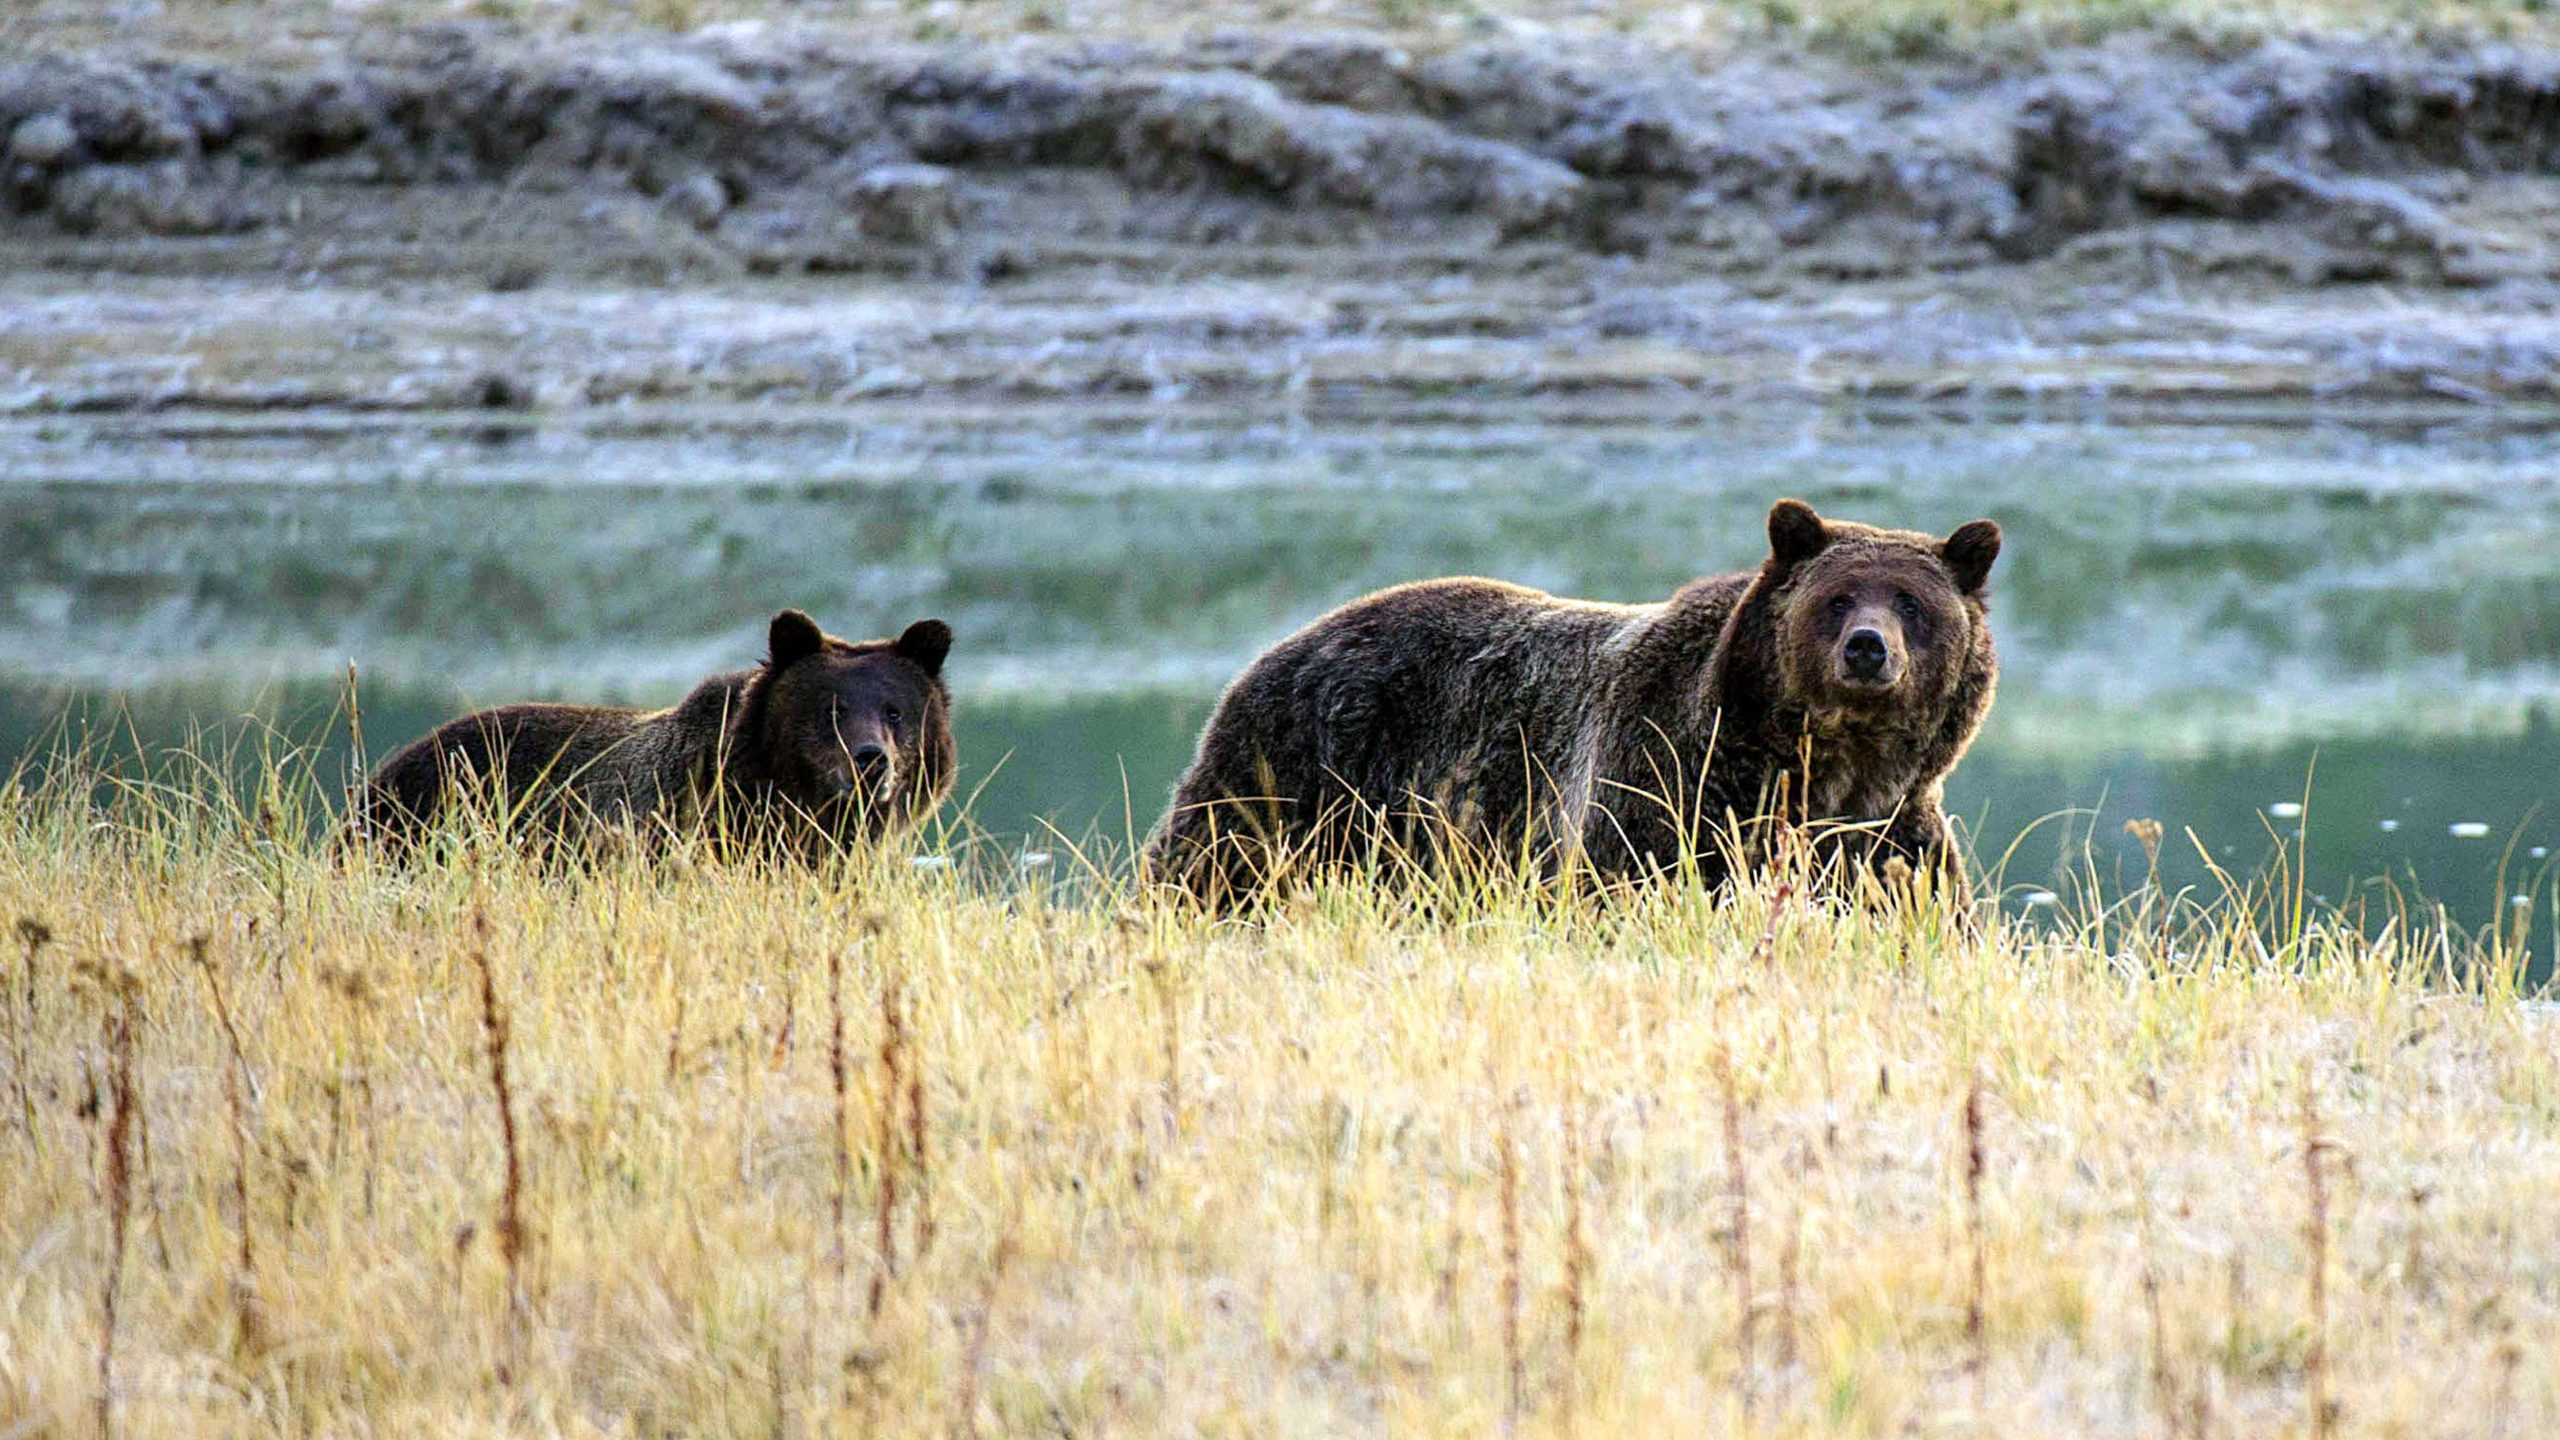 """Tourists at Yellowstone are instructed to remain 100 yards from bears at all times, and to """"never approach a bear to take a photo."""" (Karen Bleier/AFP via Getty Images)"""